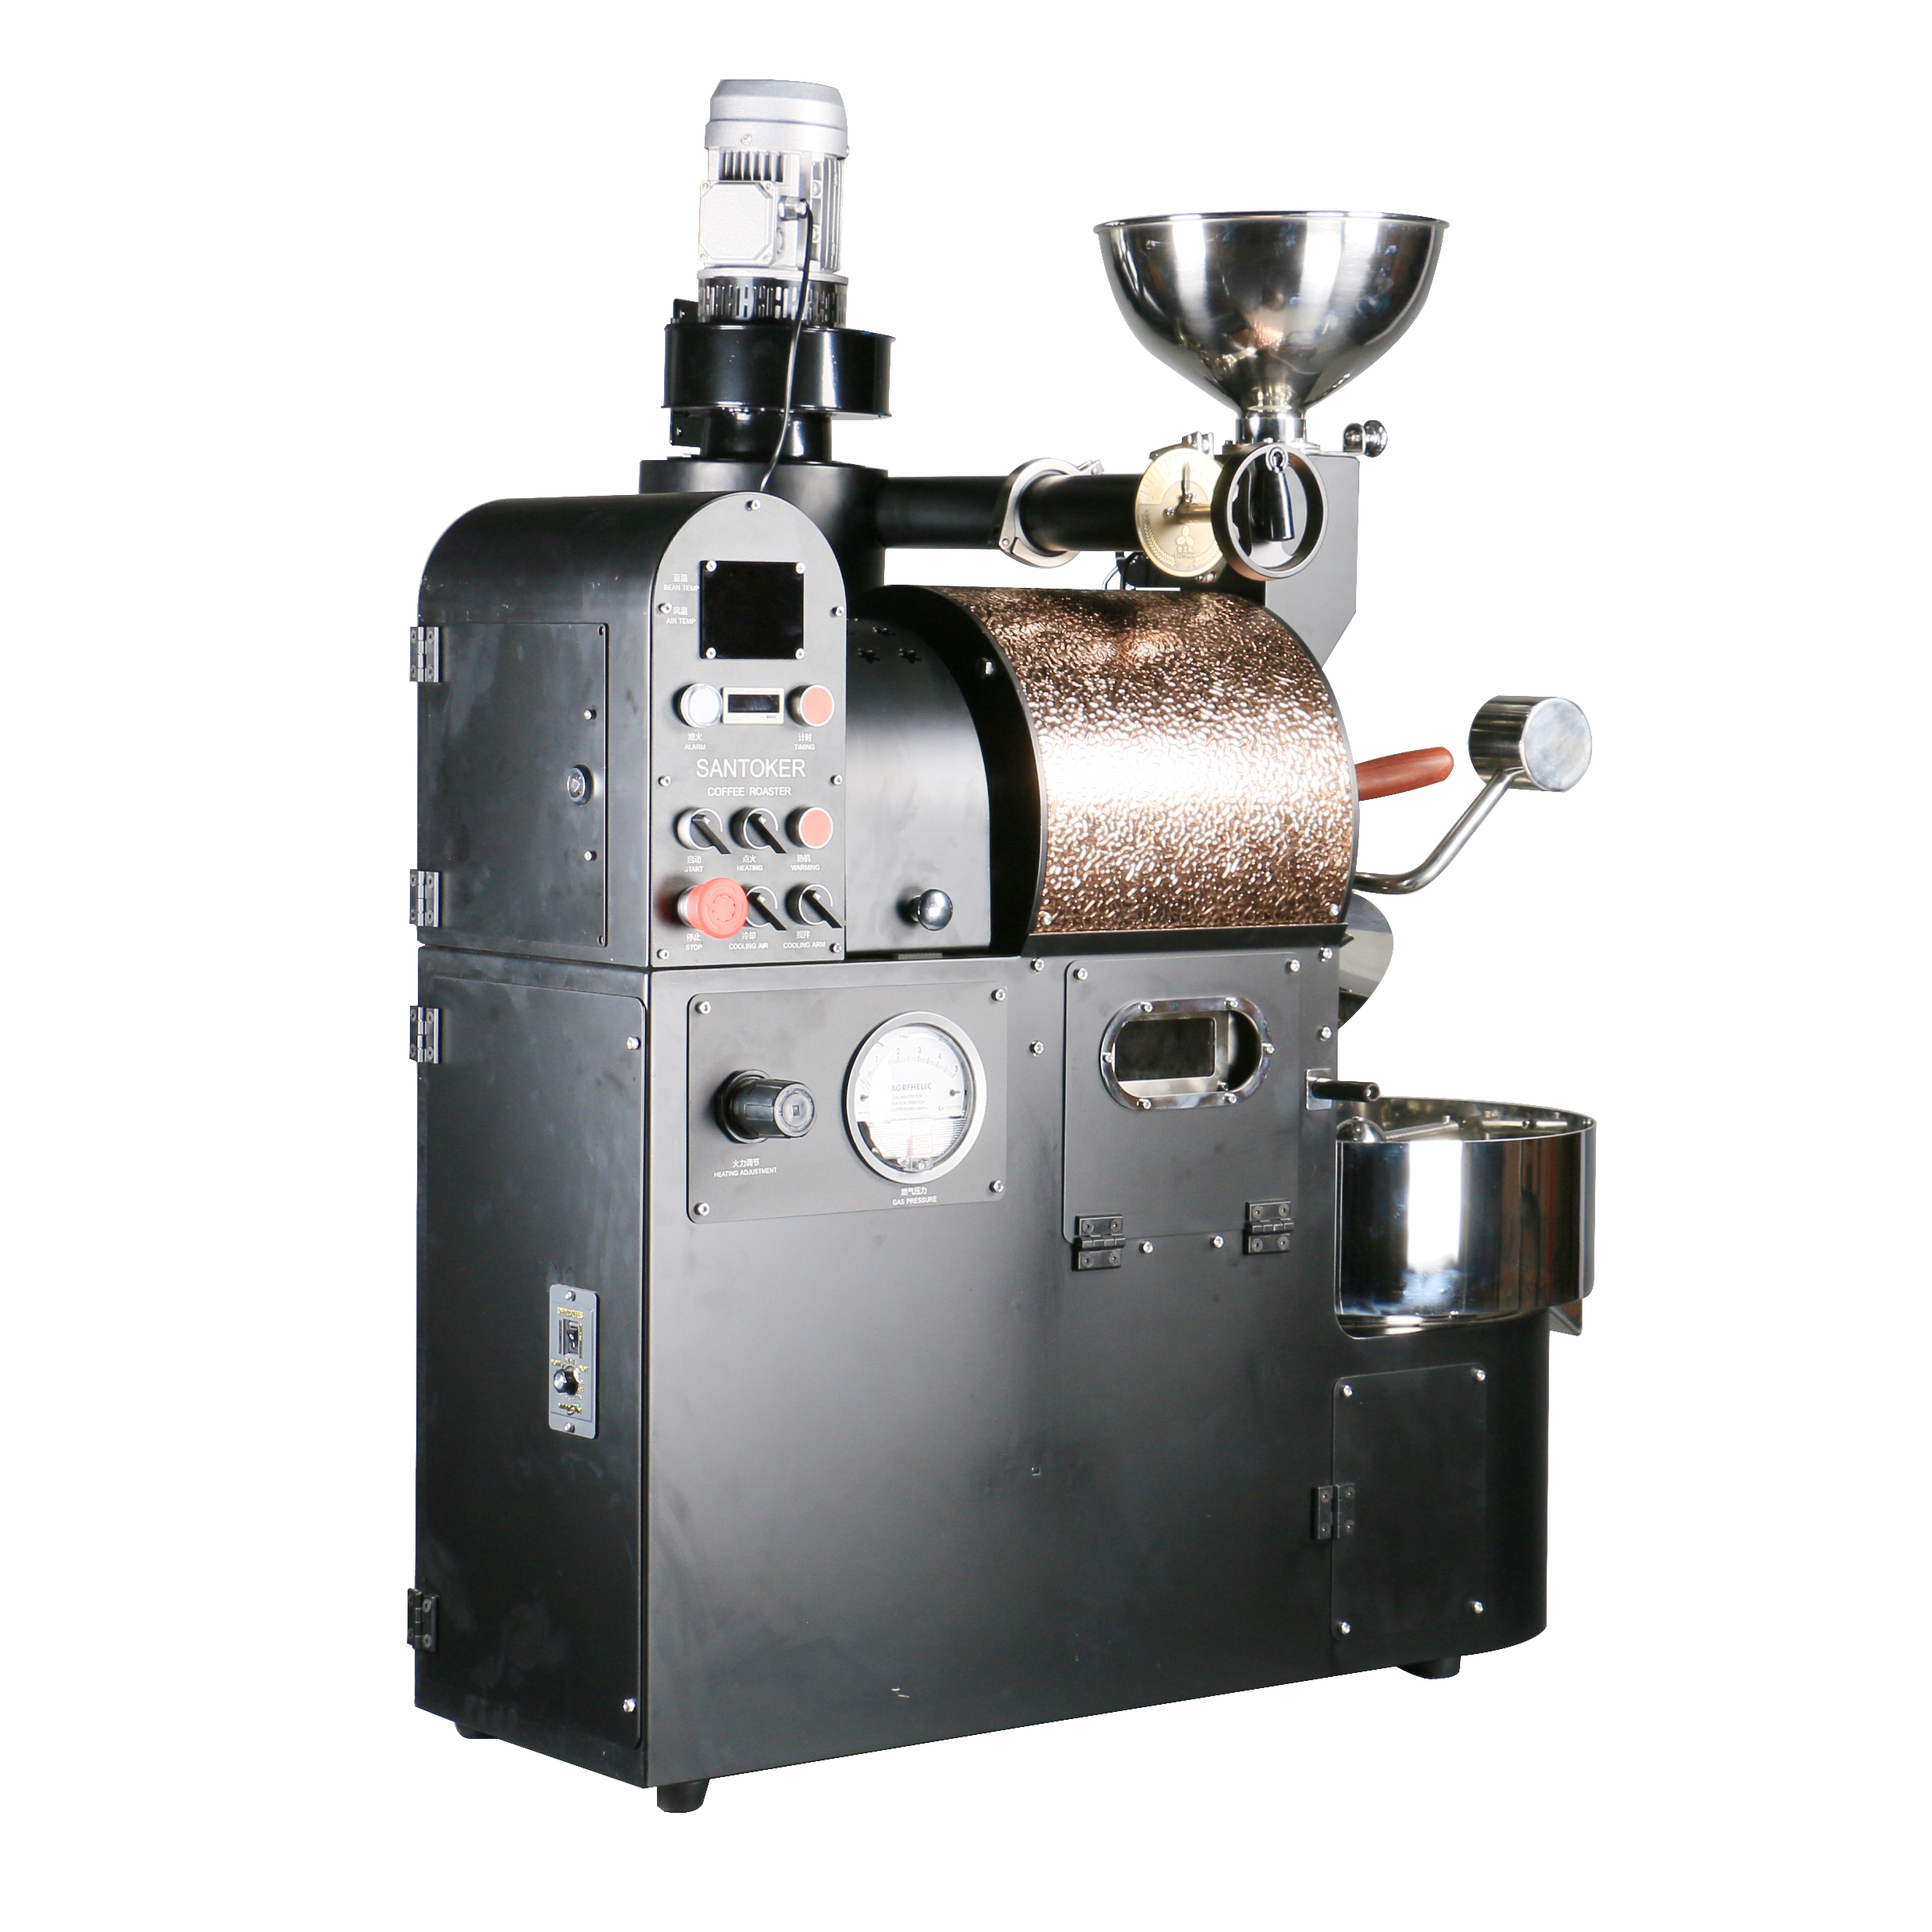 WS-1 5Pro 1 5kg Coffee Roasting Machine - Commercial Coffee